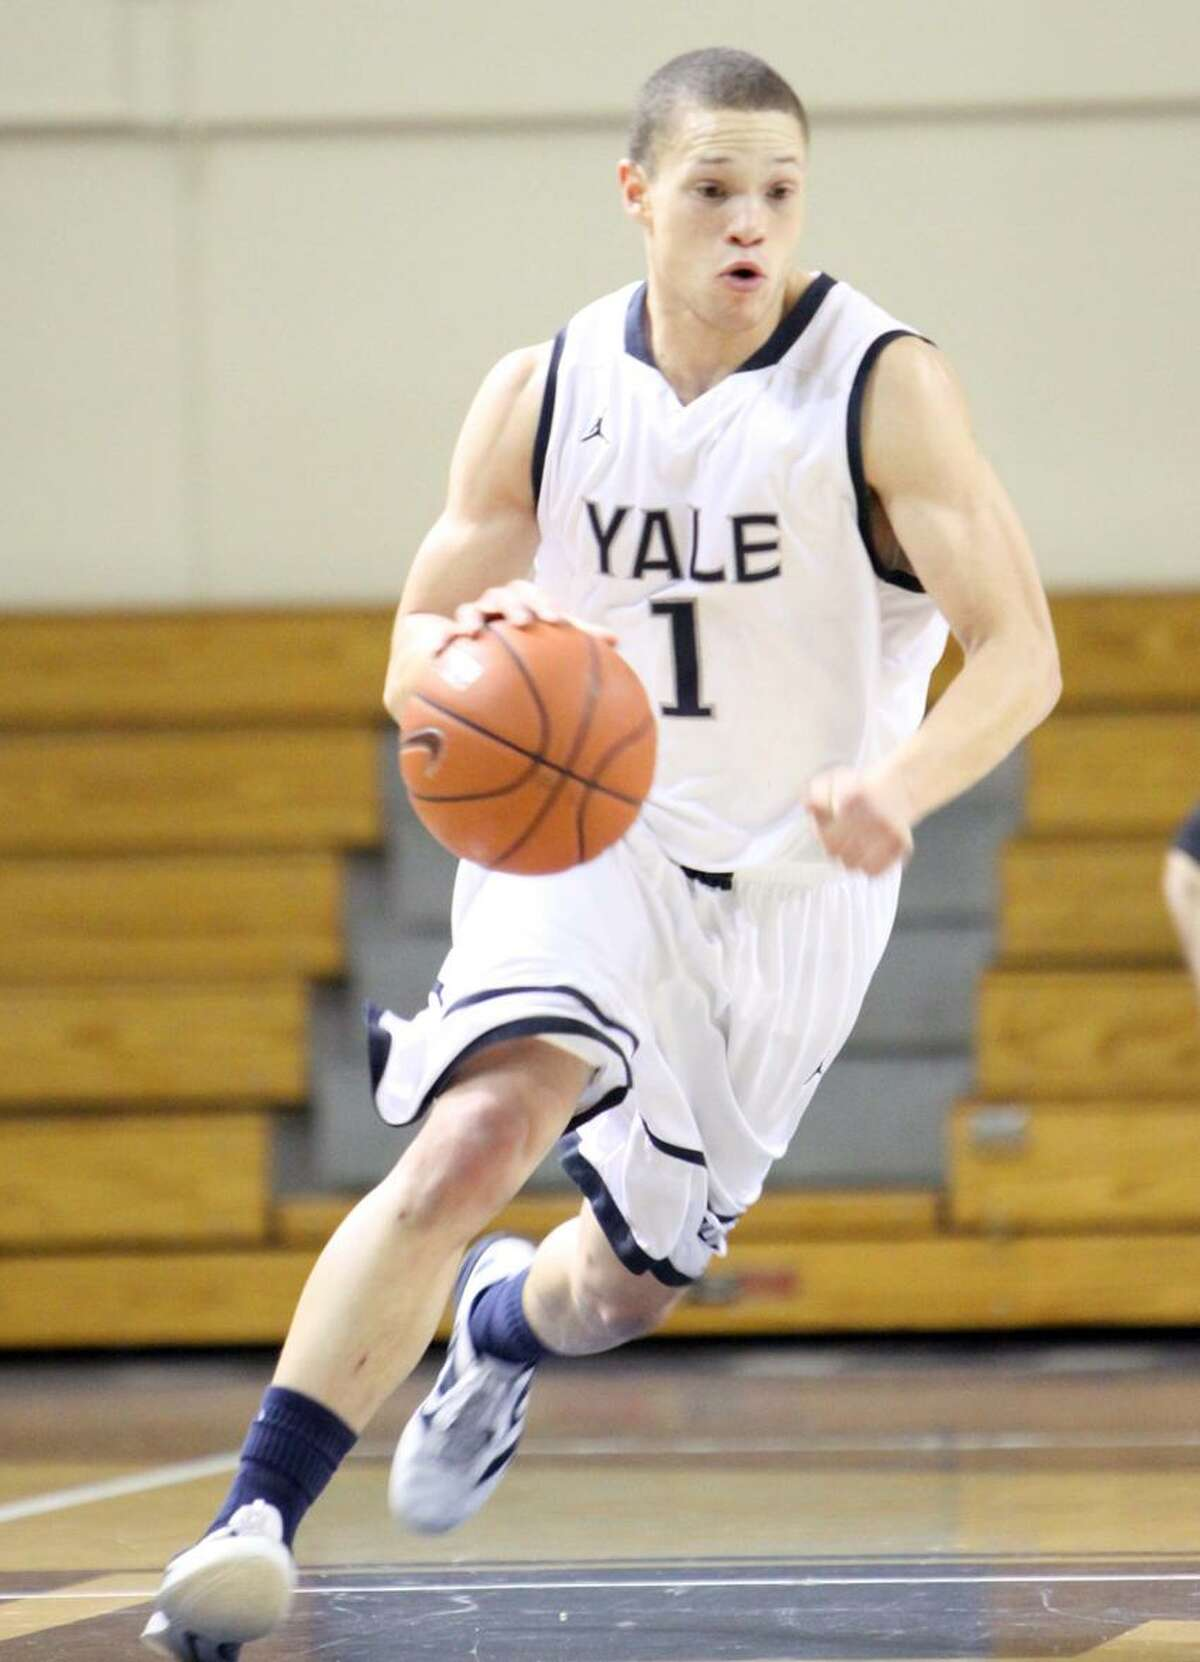 Yale's Austin Morgan. (Submitted photo)